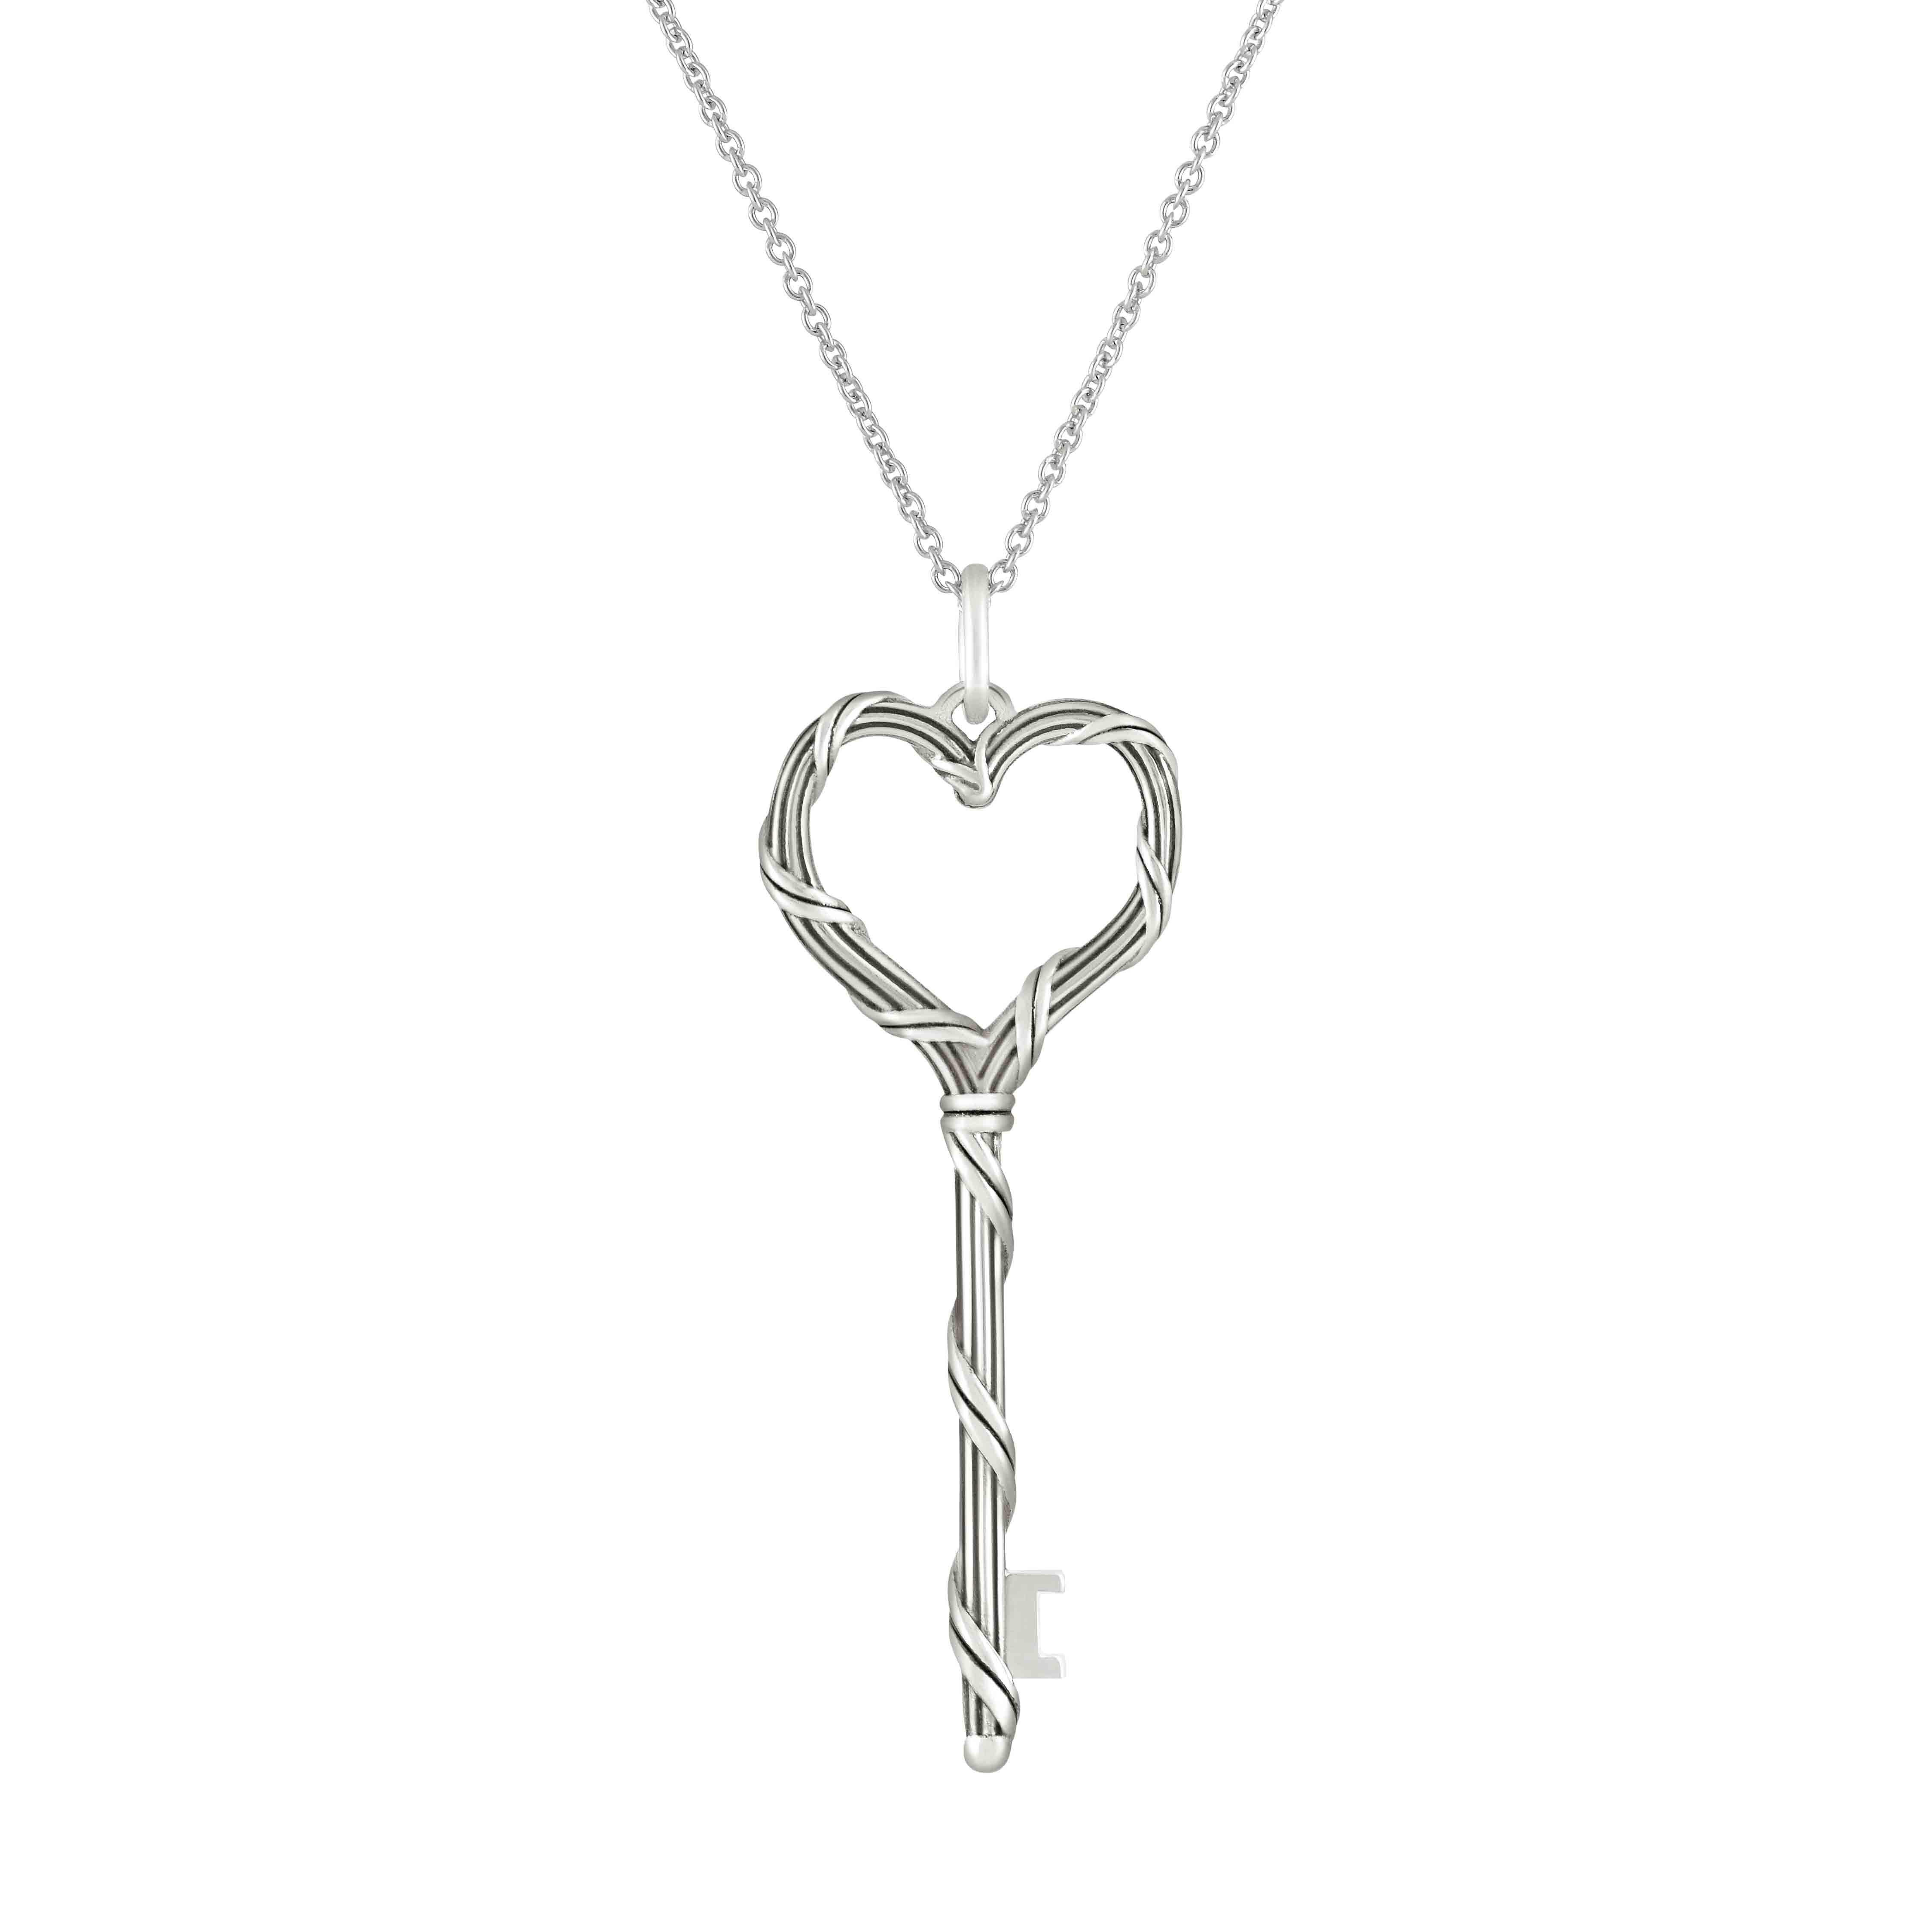 Signature Classic Heart Key Necklace in Sterling Silver